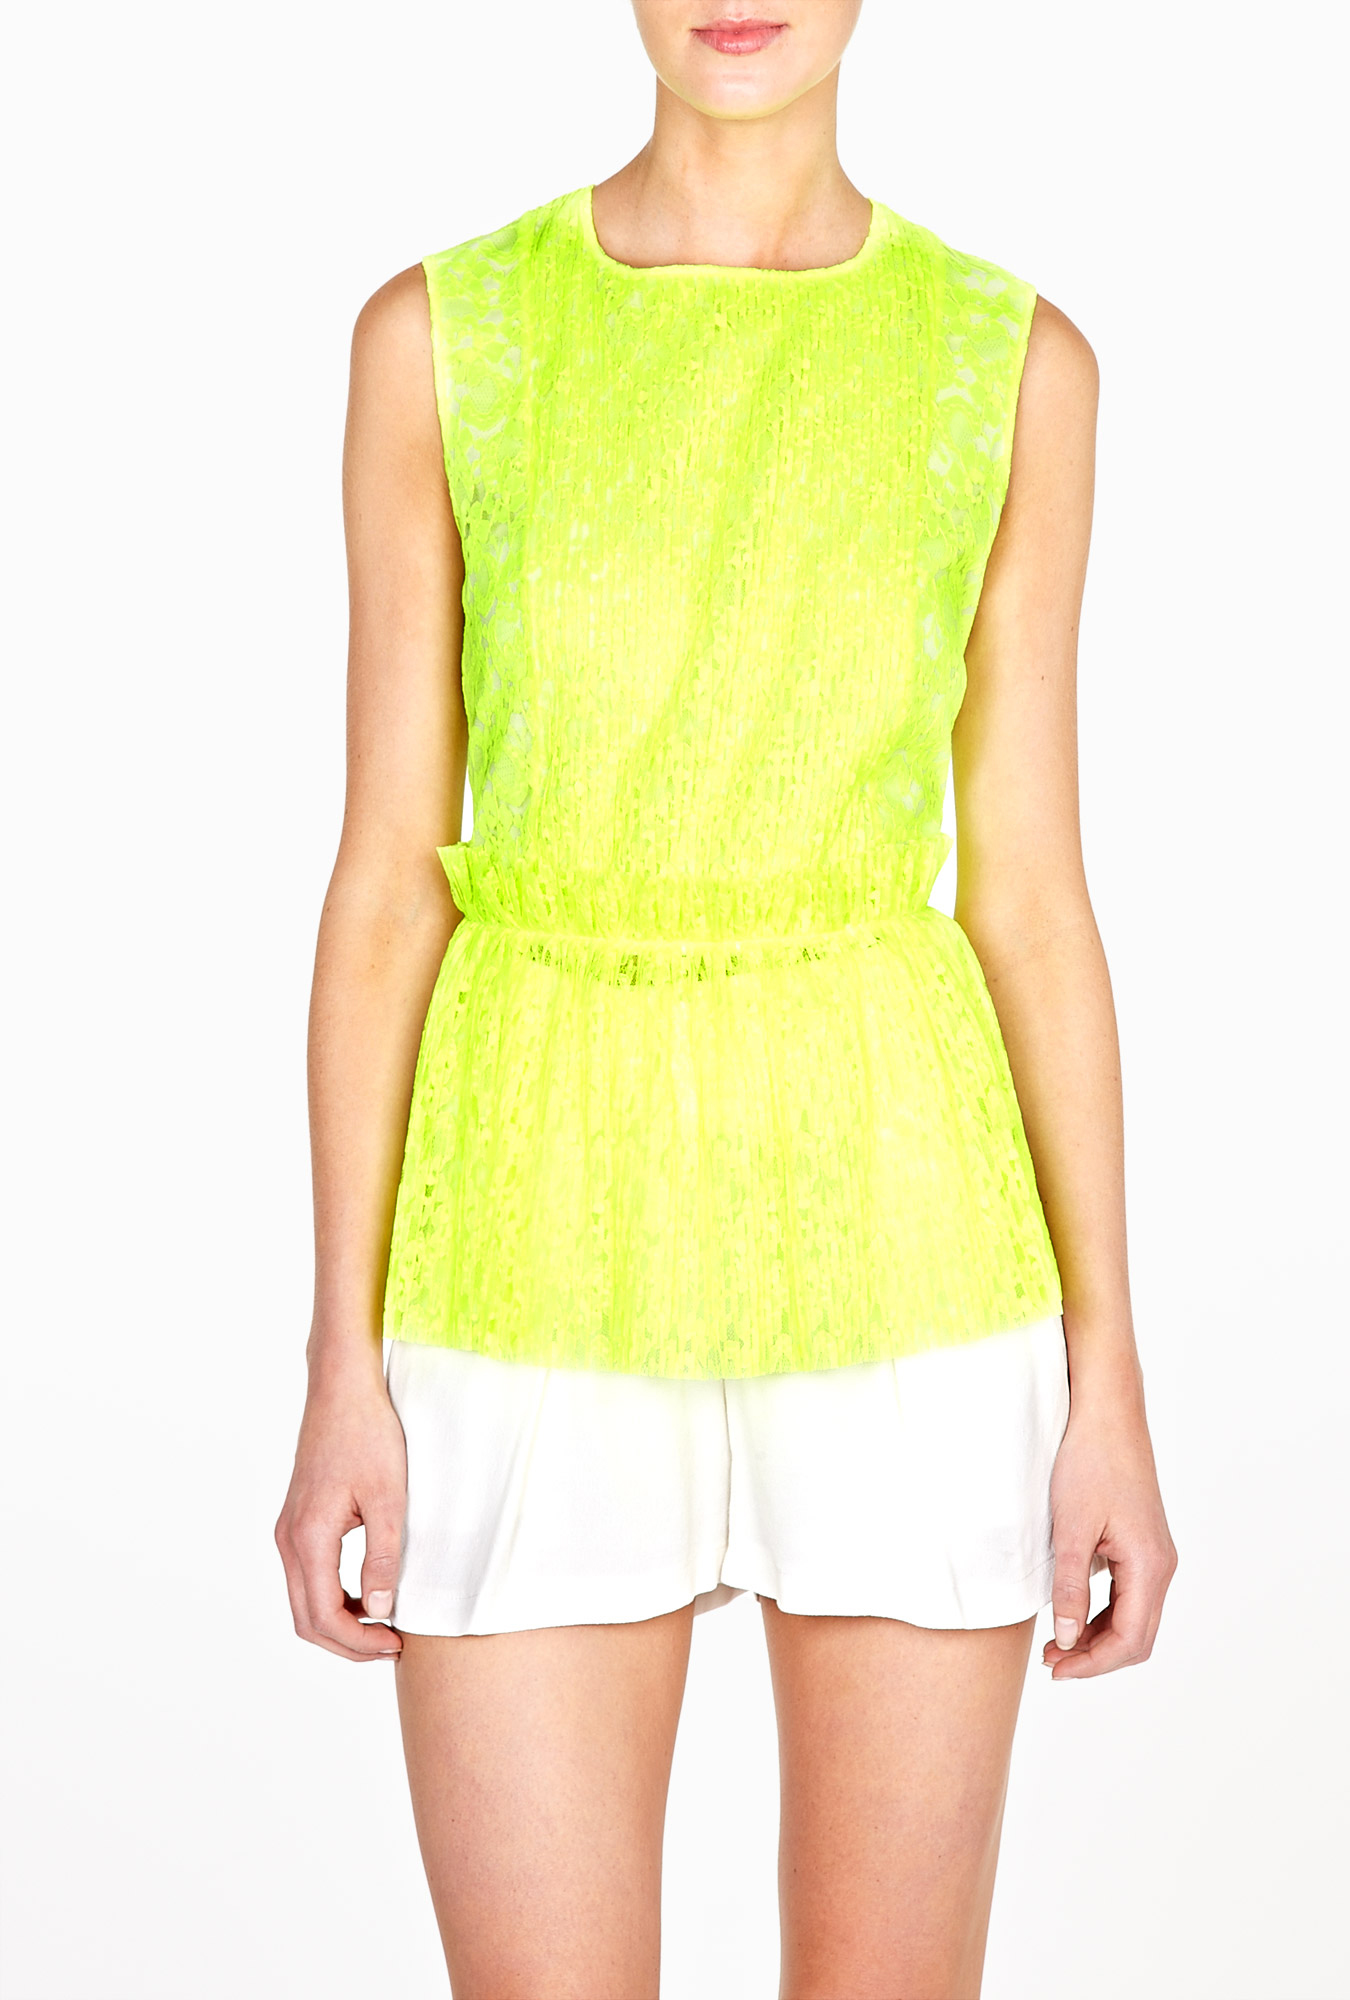 Fluoro yellow lace sleeveless peplum top by msgm